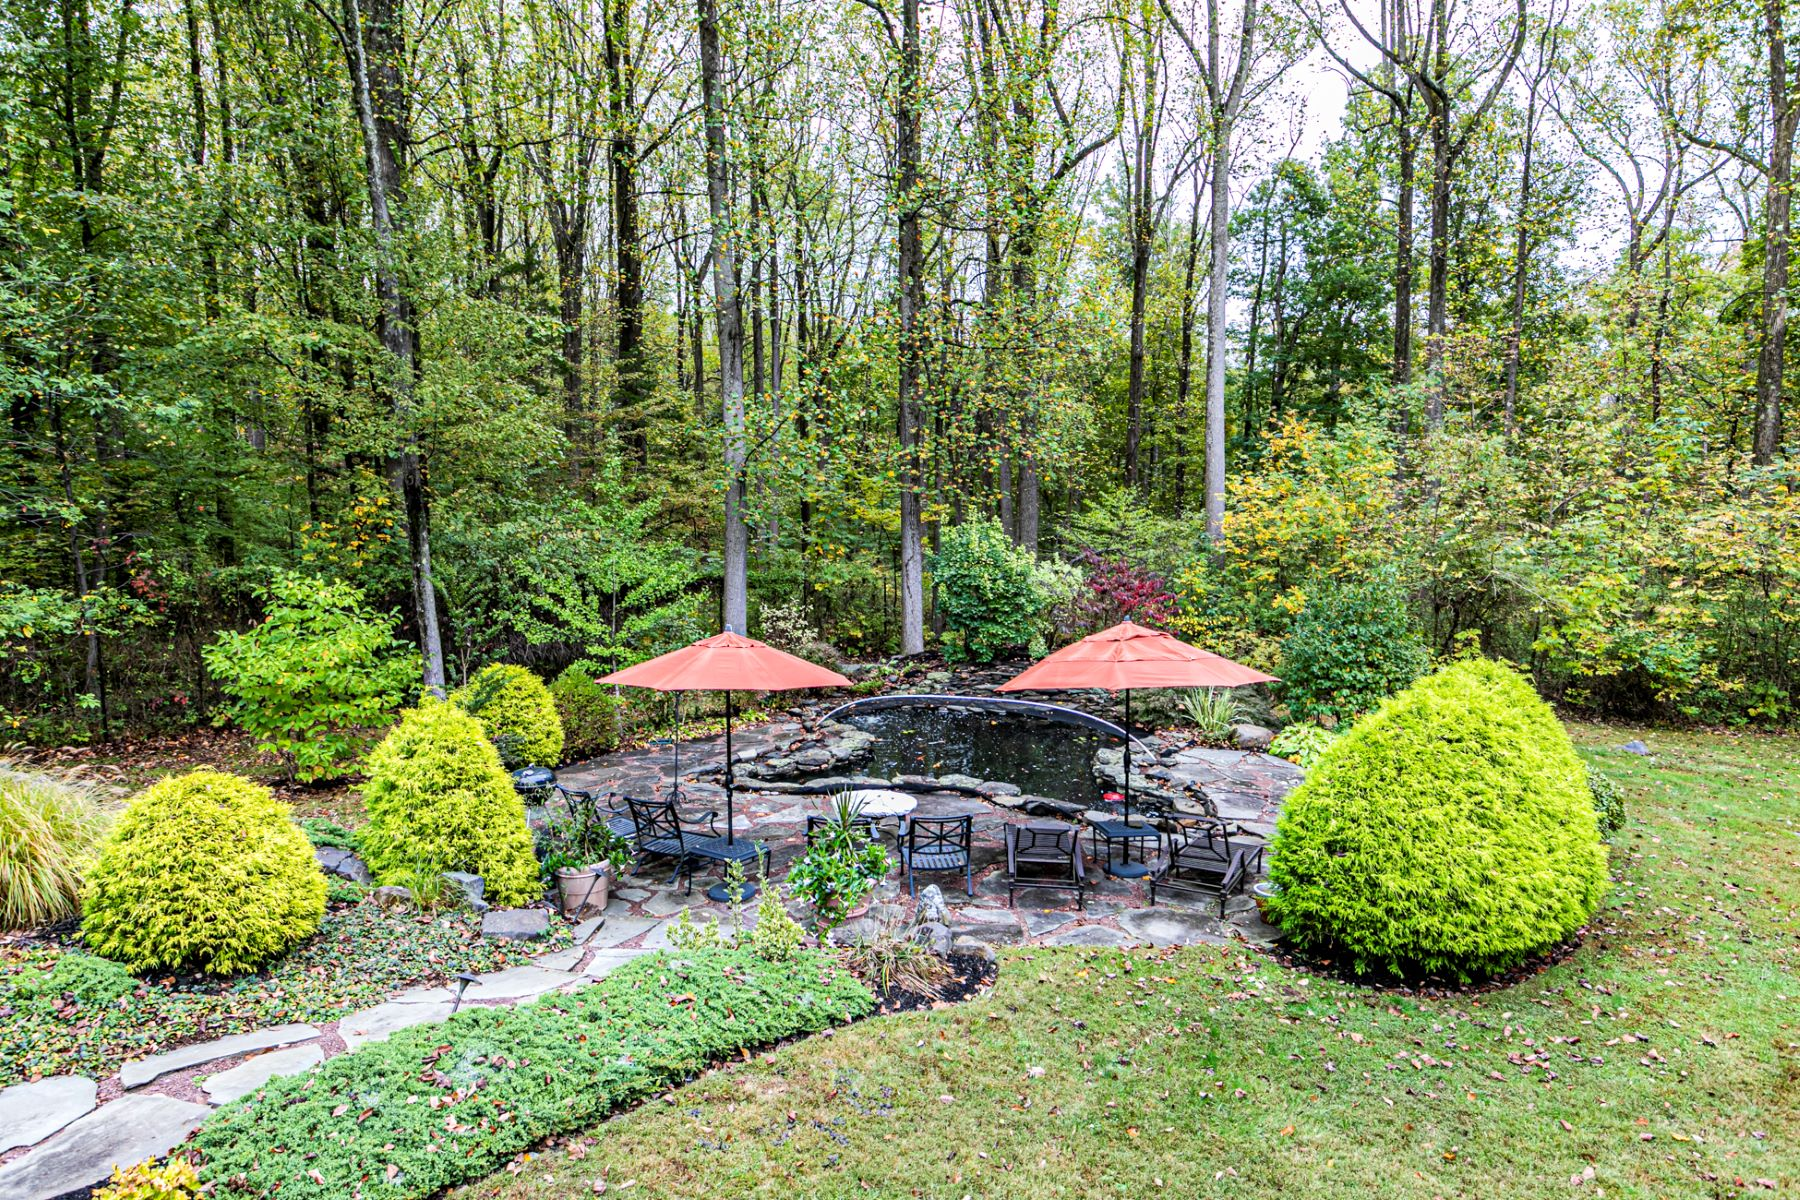 Additional photo for property listing at Exquisite Home And Grounds 115 Mountain Road, Ringoes, New Jersey 08551 United States